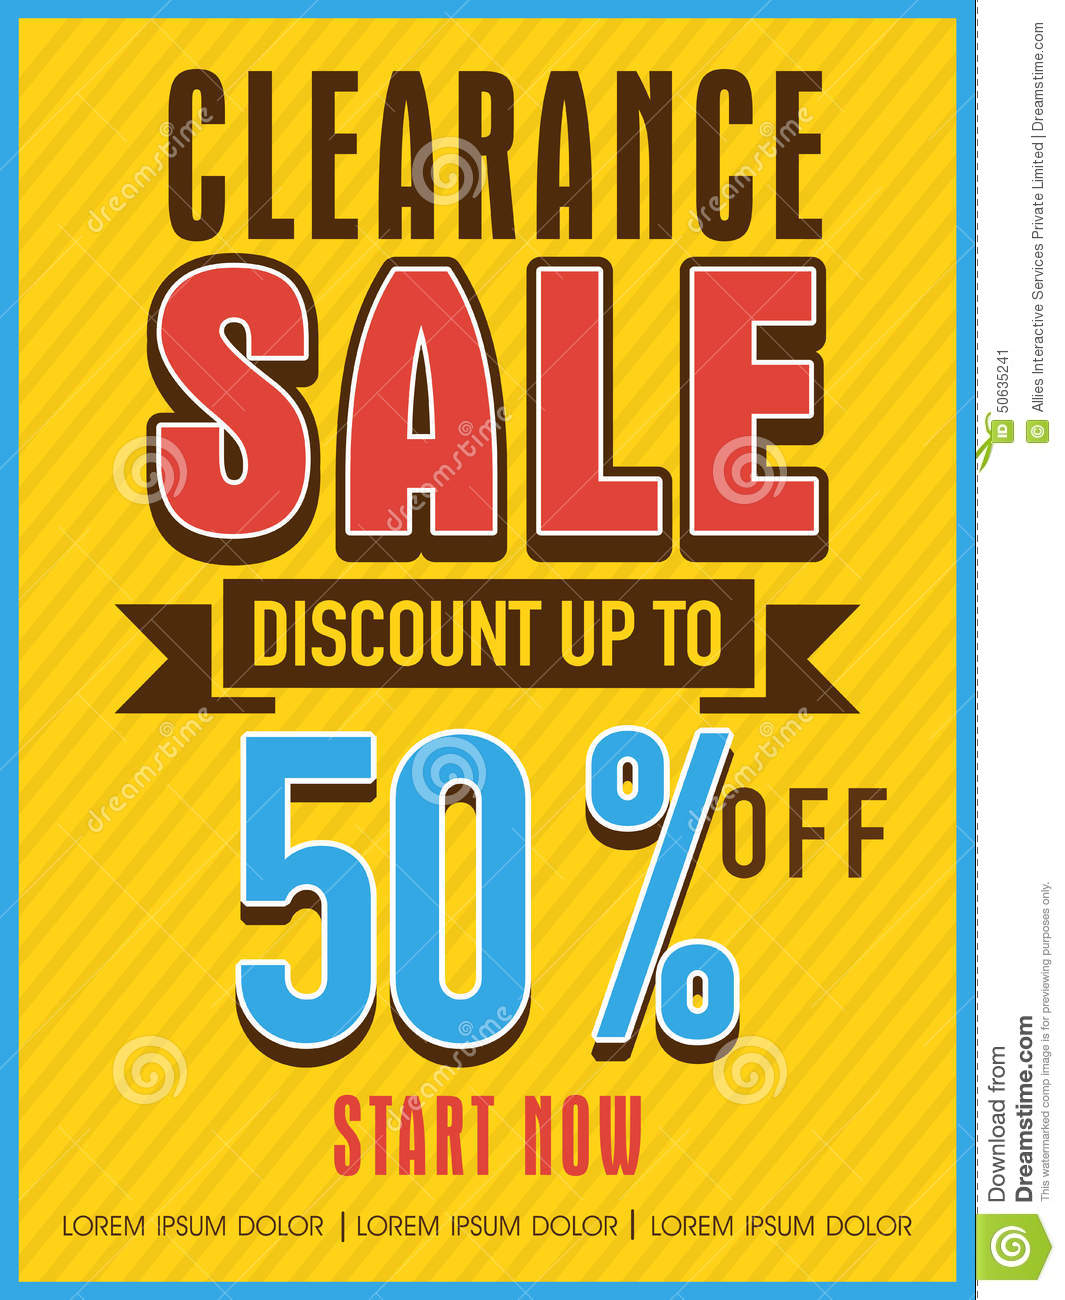 clearance sale flyer banner or template stock photo